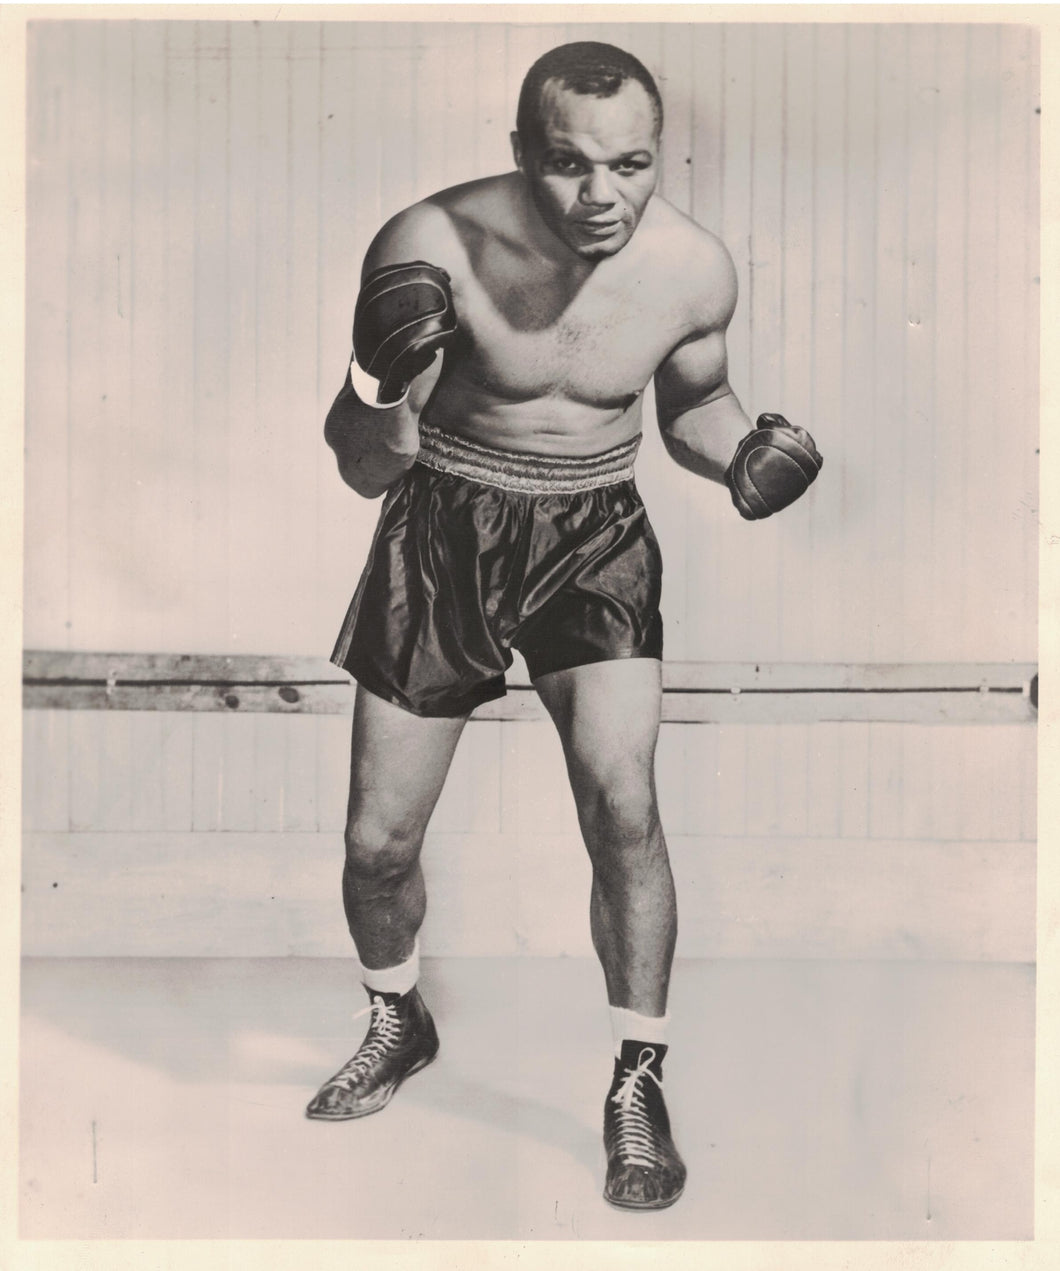 Old photograph of Jersey Joe Walcott boxing champion.